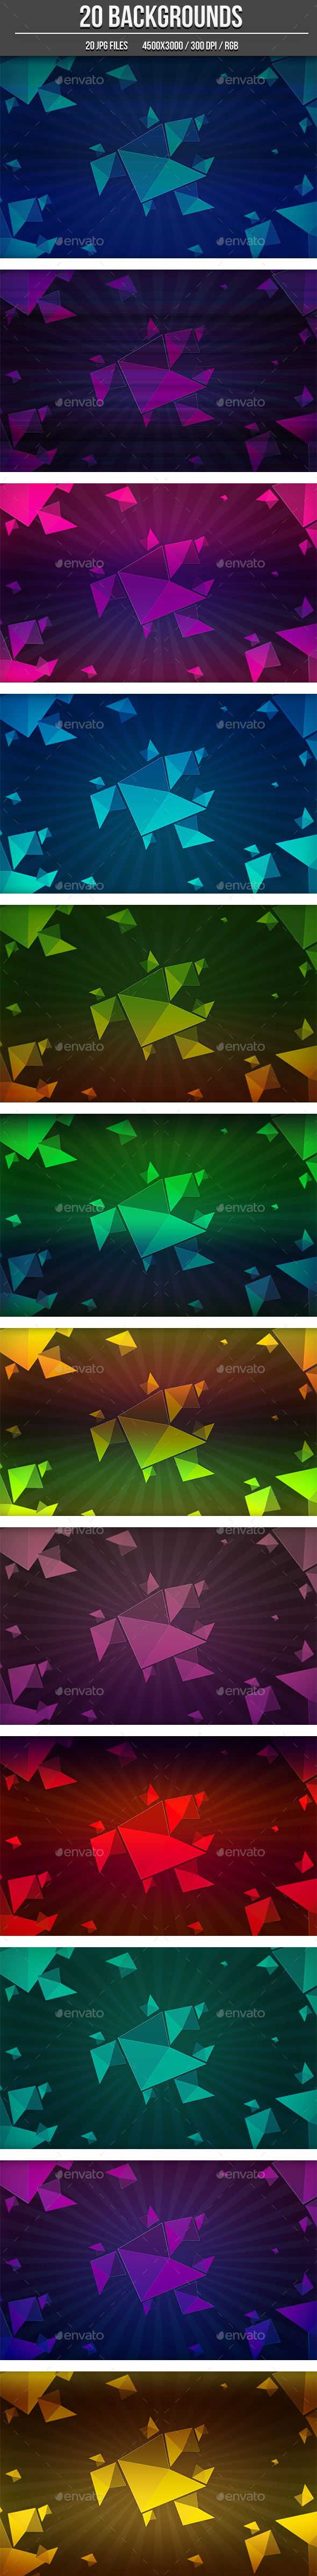 20 Abstract Background Shapes by MrSoundFX 20 Abstract Backgrounds 20 high quality background for your projetcs. Works well with flyers, web design, etc鈥?20The Zip file conta